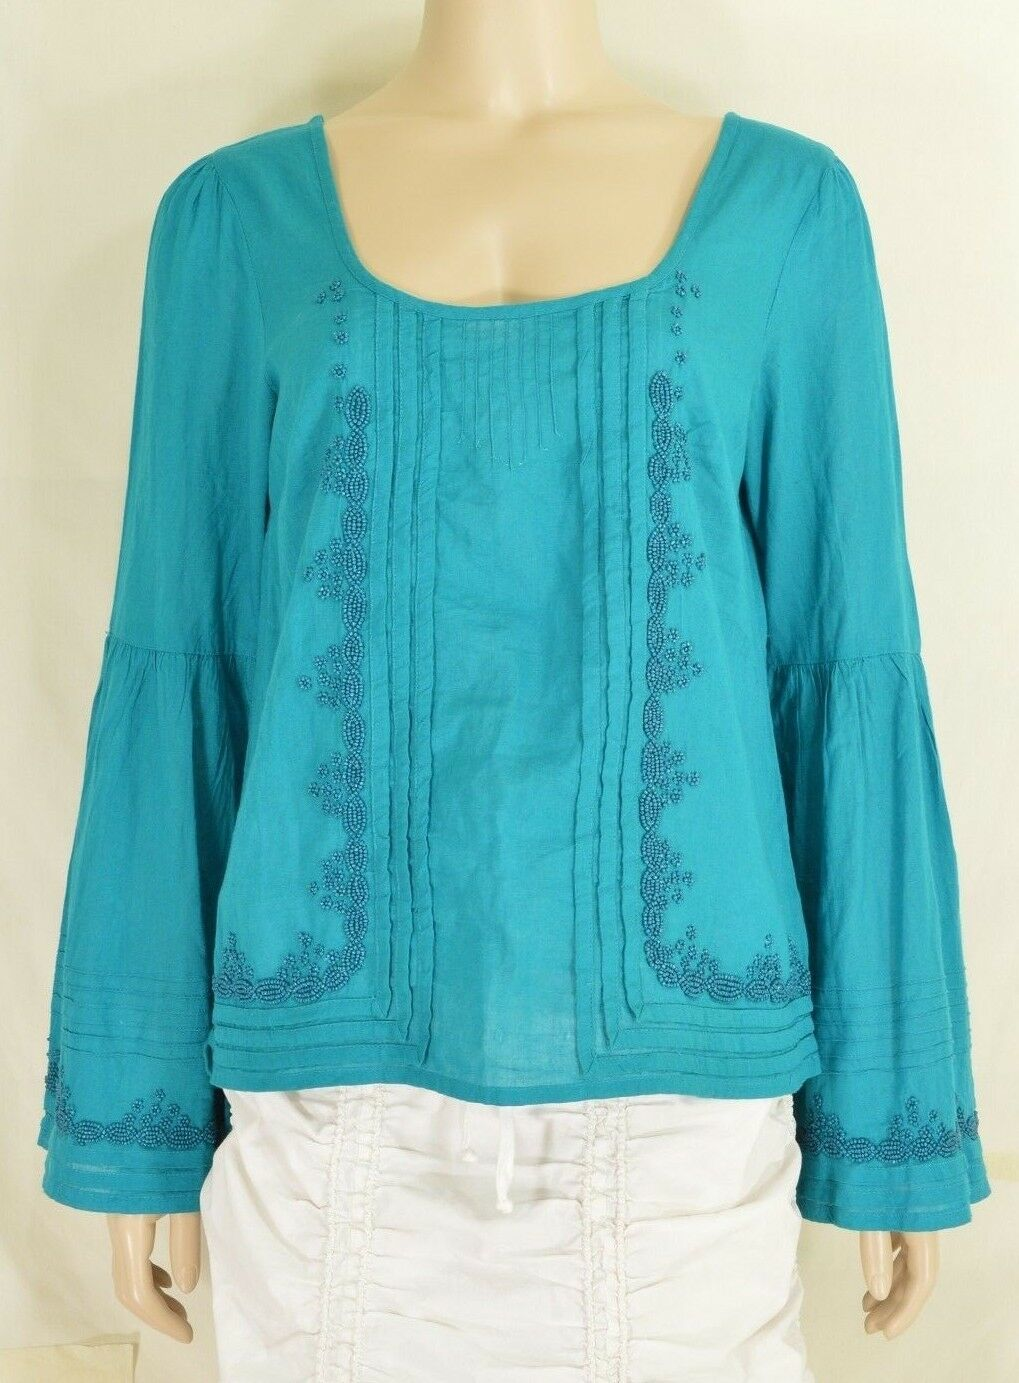 Free People top SZ S turquoise teal beaded long bell sleeves hippie boho gypsy